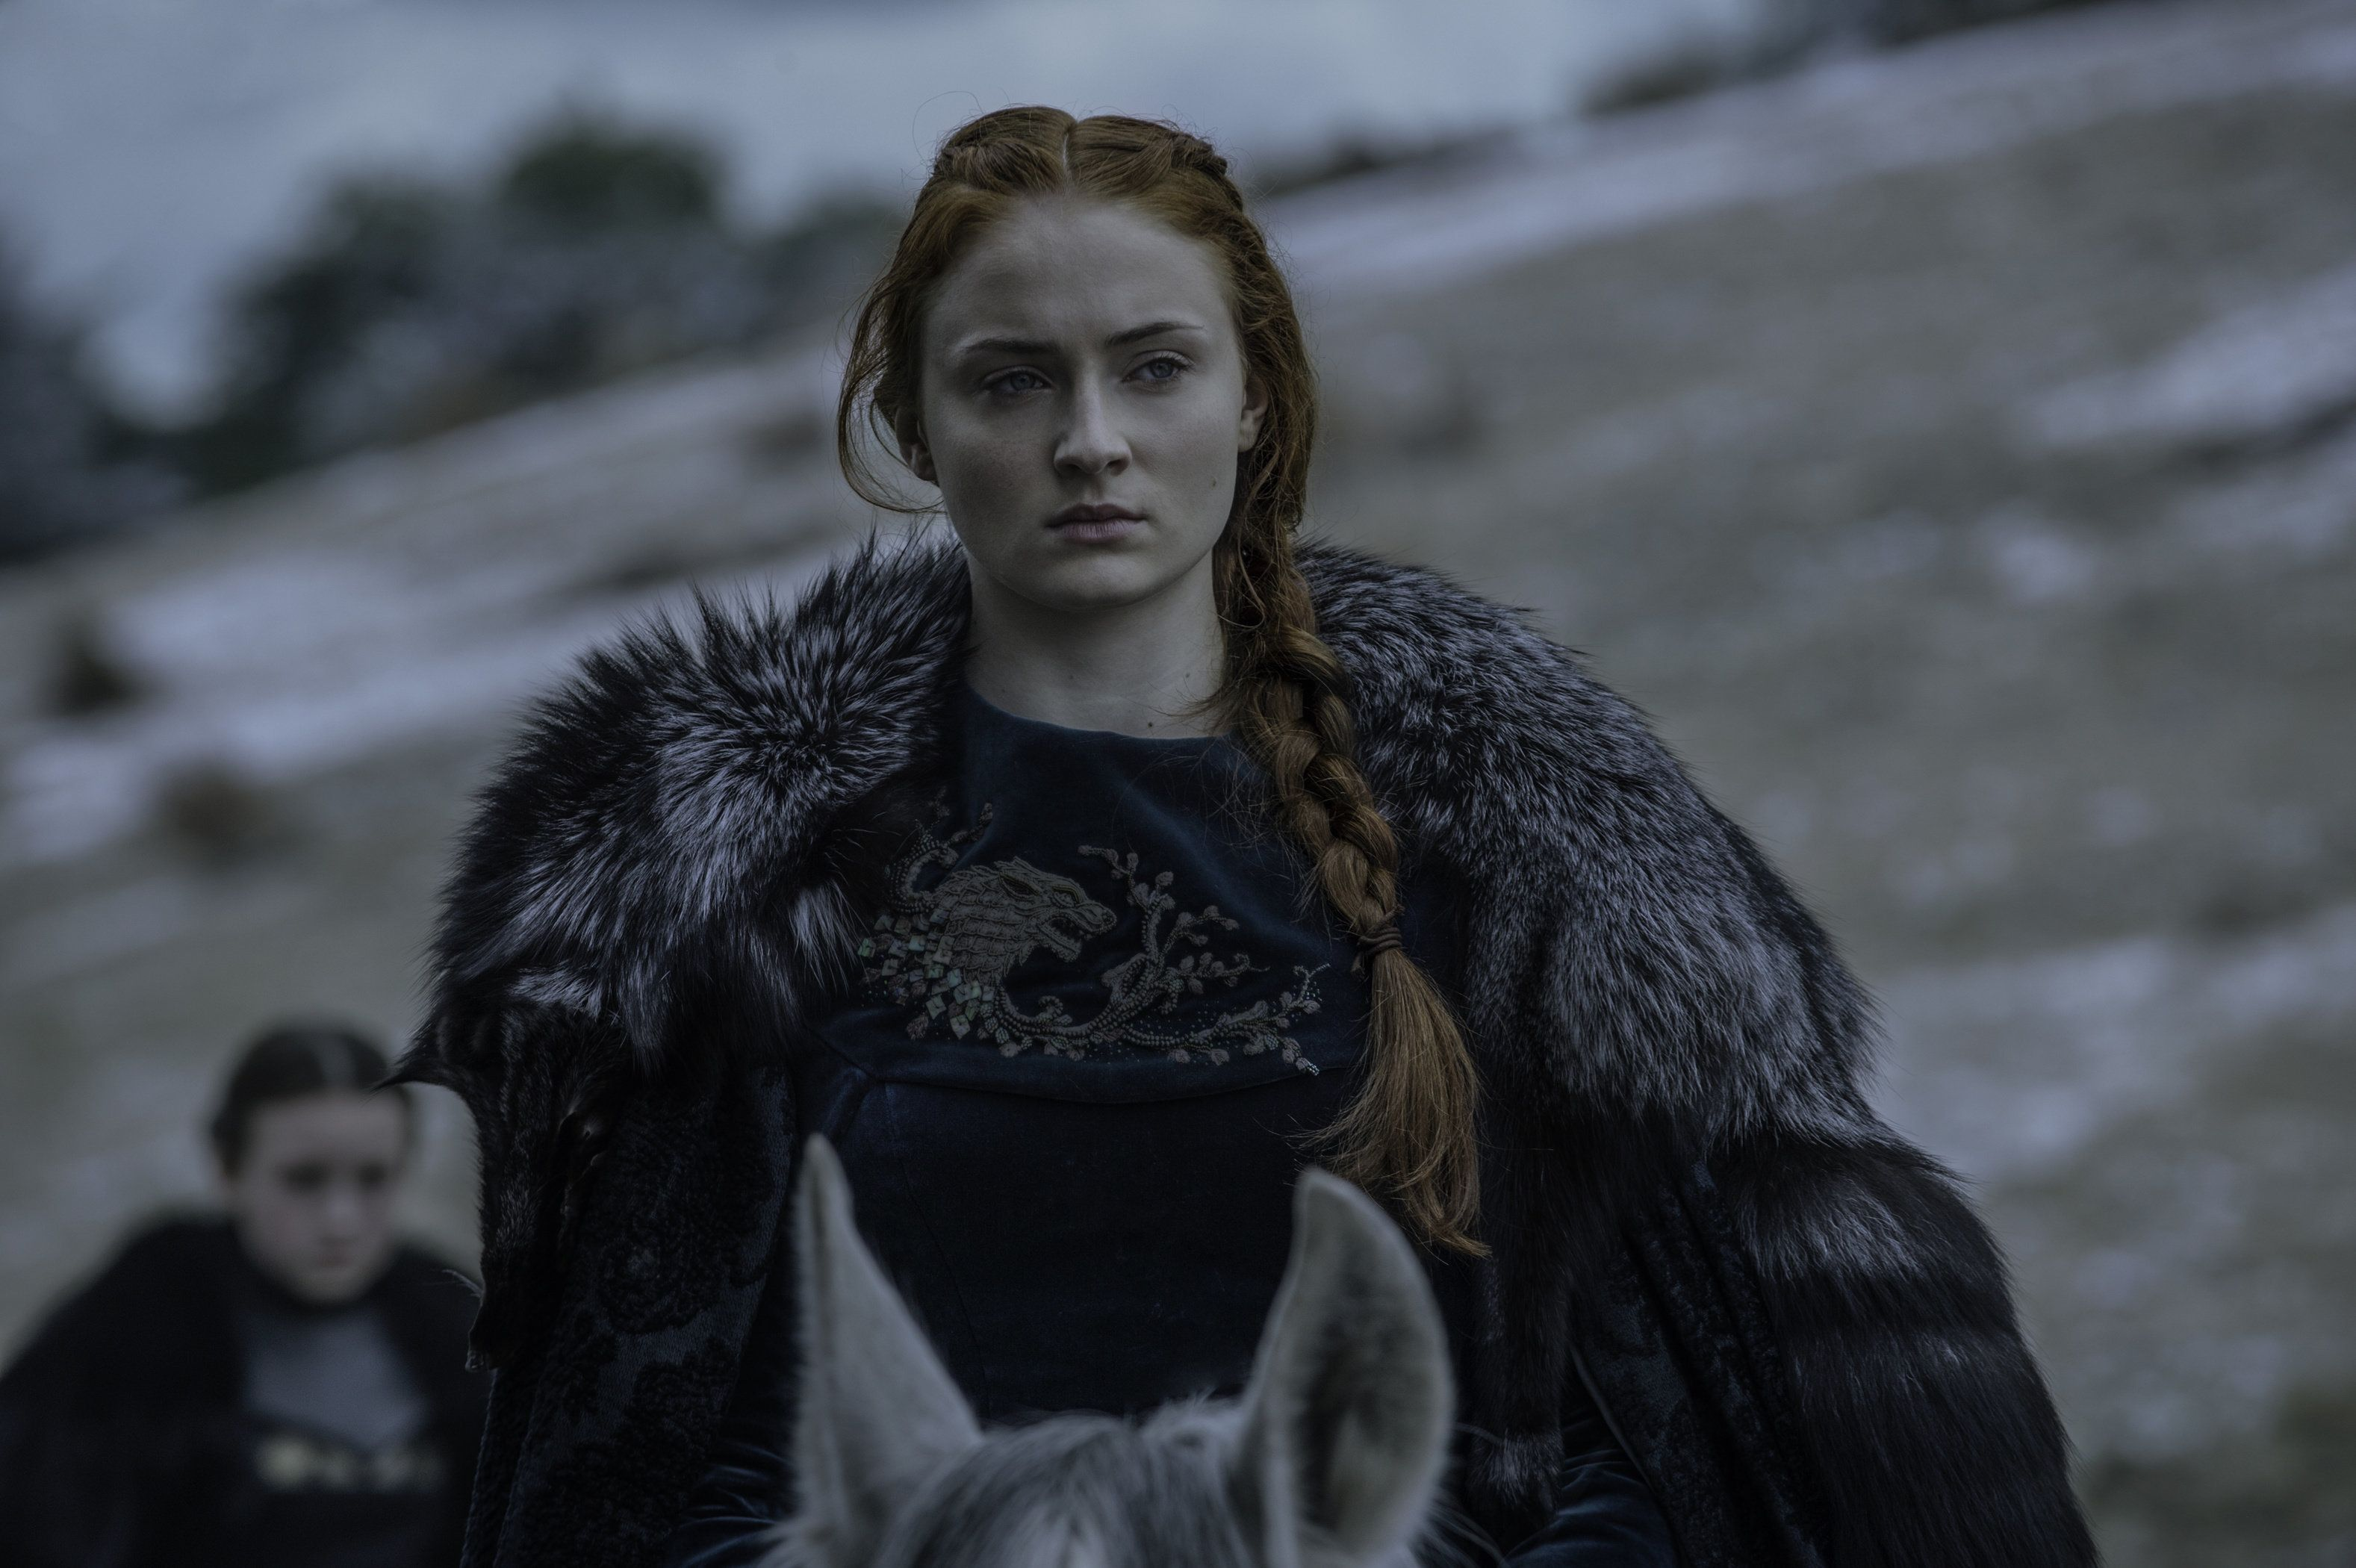 This Iconic 'Game Of Thrones' Moment May Have A Doggone Plot